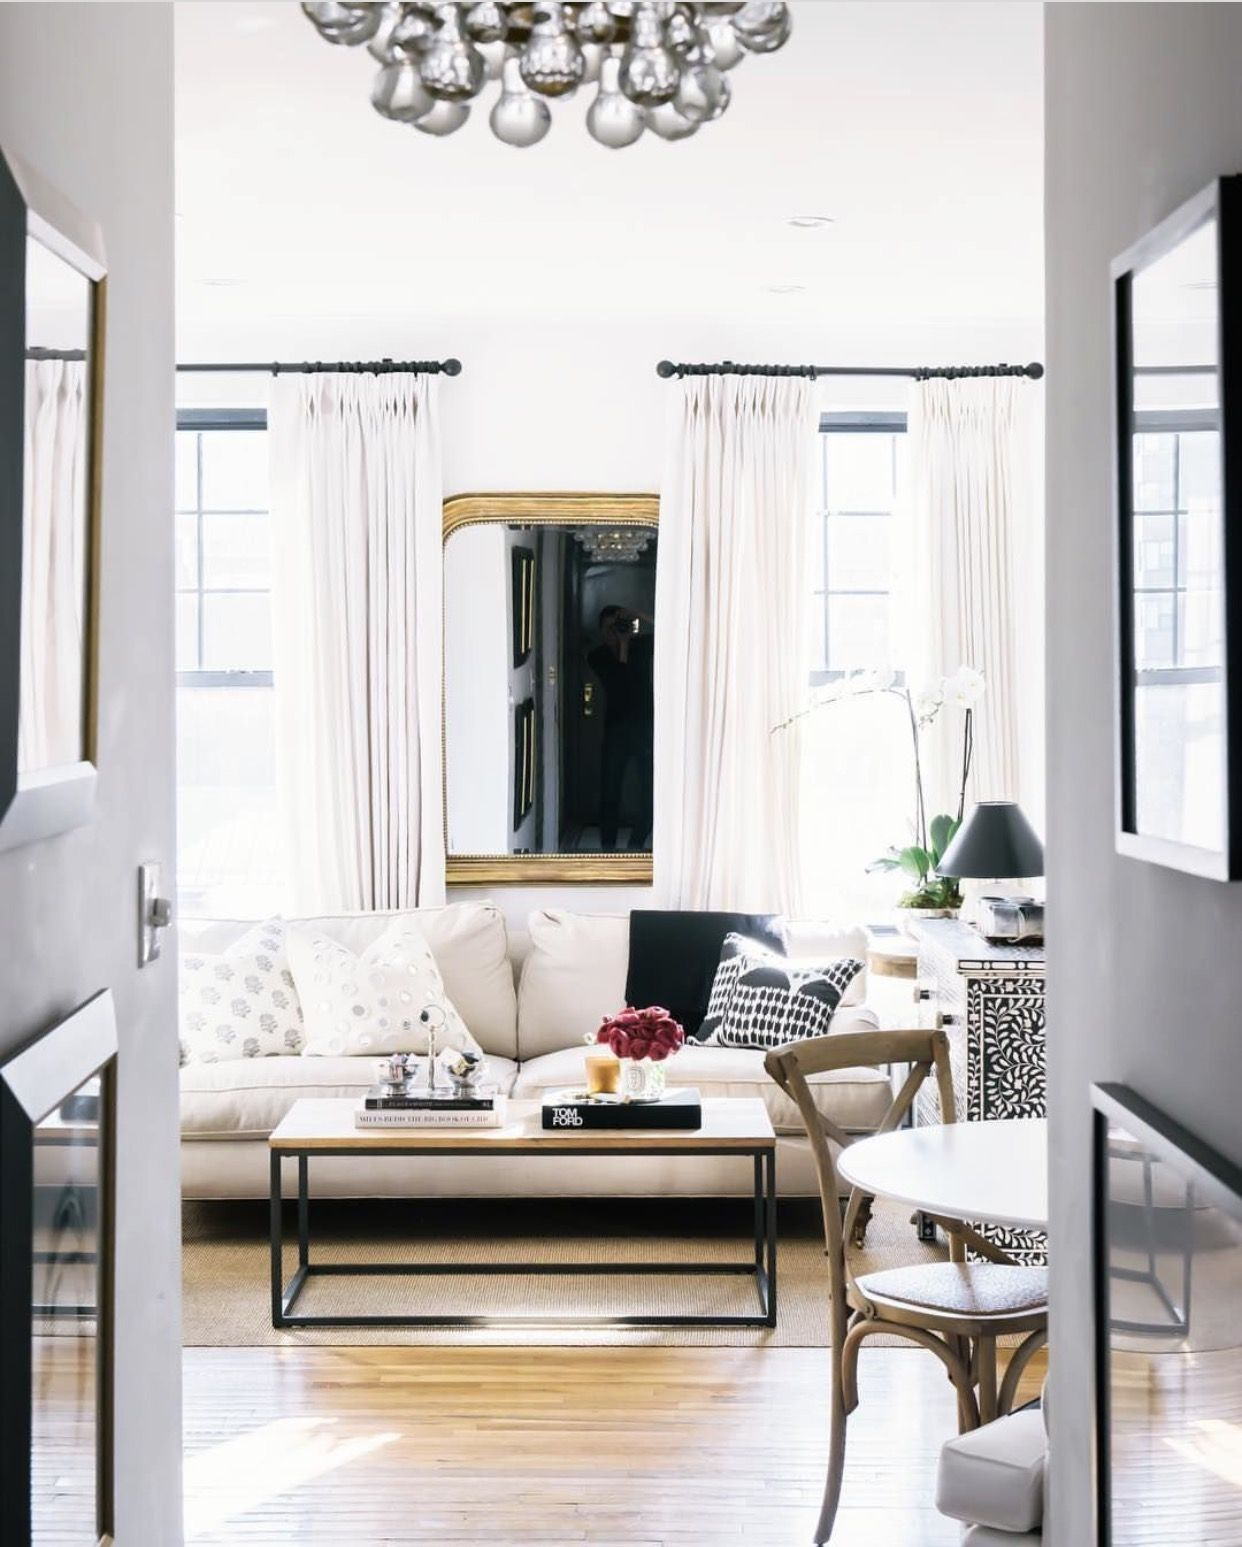 Pin by Tanya Sarkissian on Fabulous Homes | Pinterest | Interiors ...